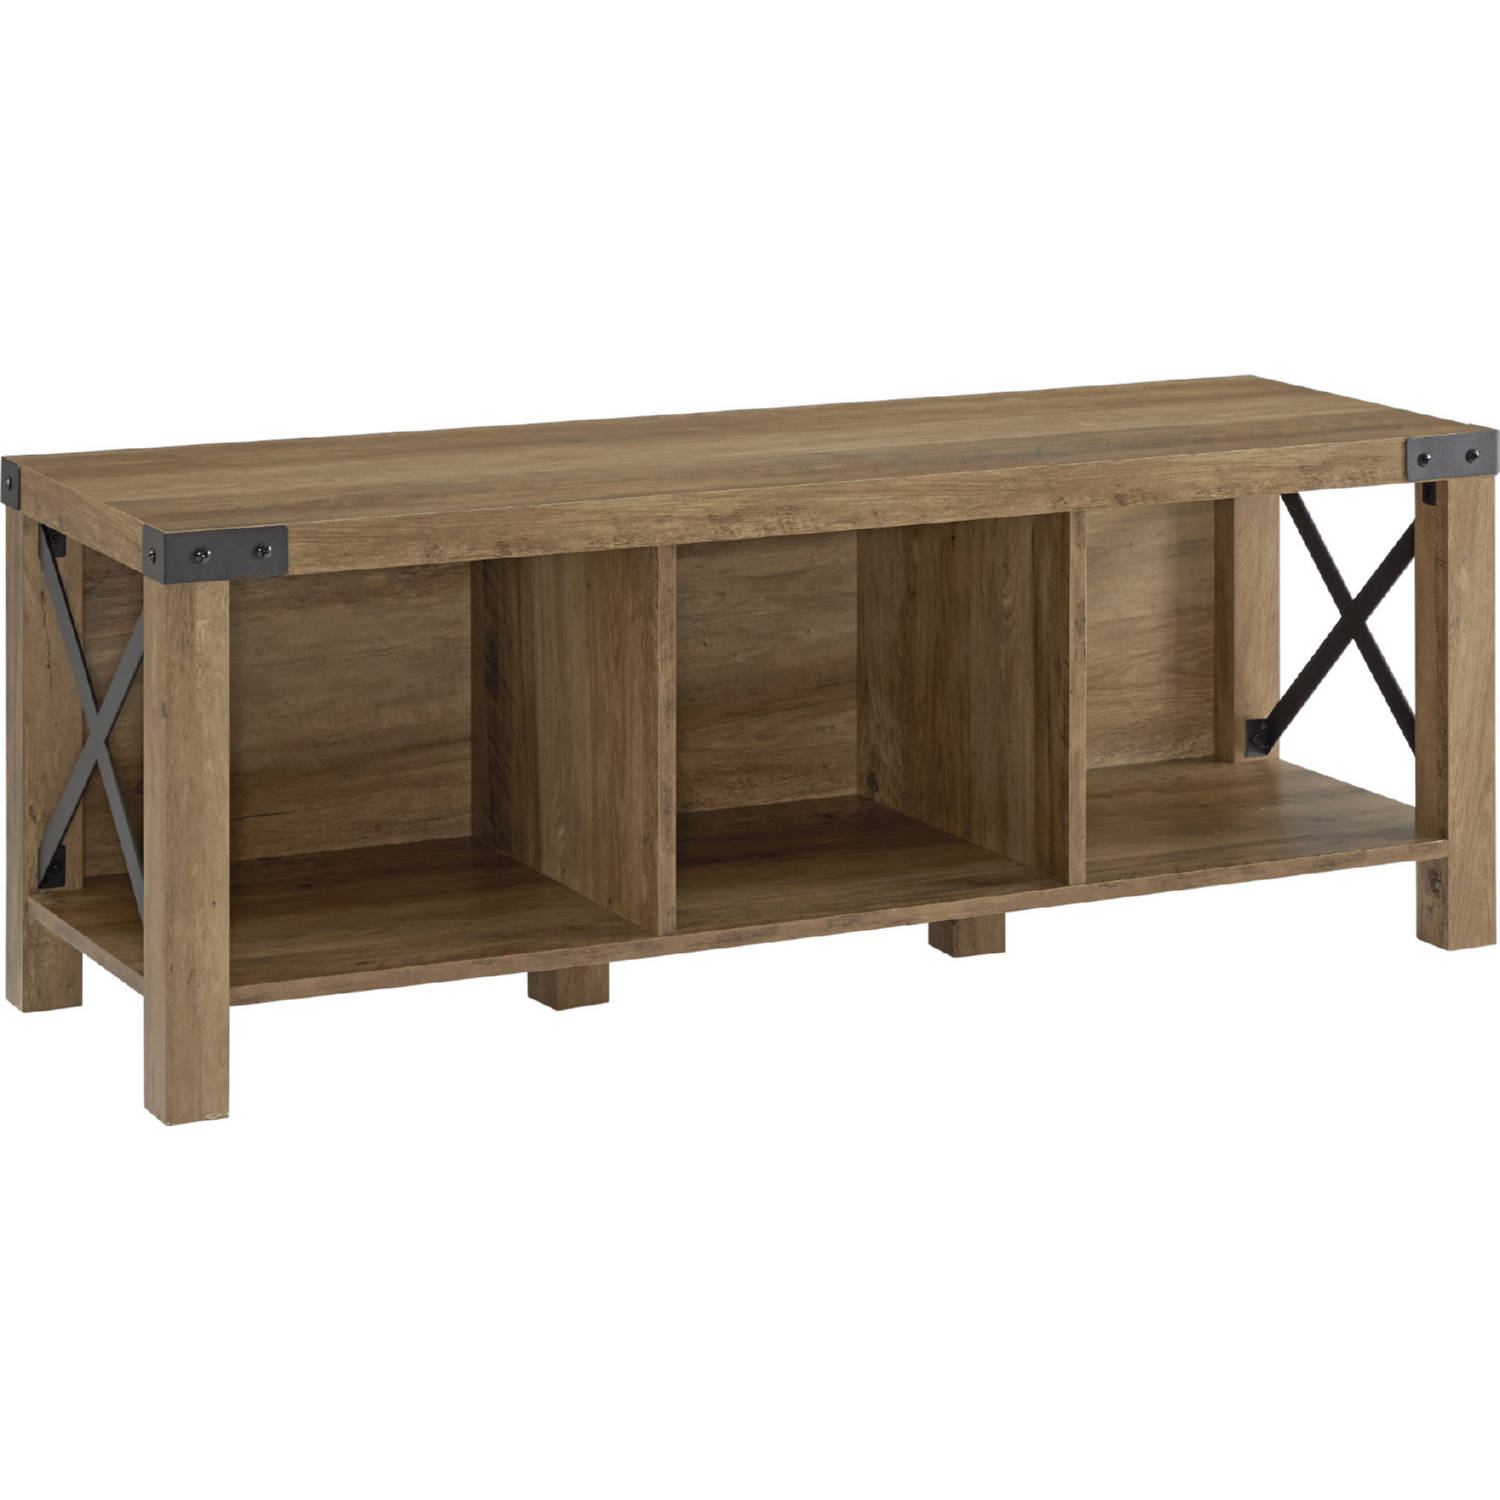 Miraculous 48 Farmhouse Wood Metal Entry Bench In Reclaimed Barnwood By Walker Edison Gmtry Best Dining Table And Chair Ideas Images Gmtryco